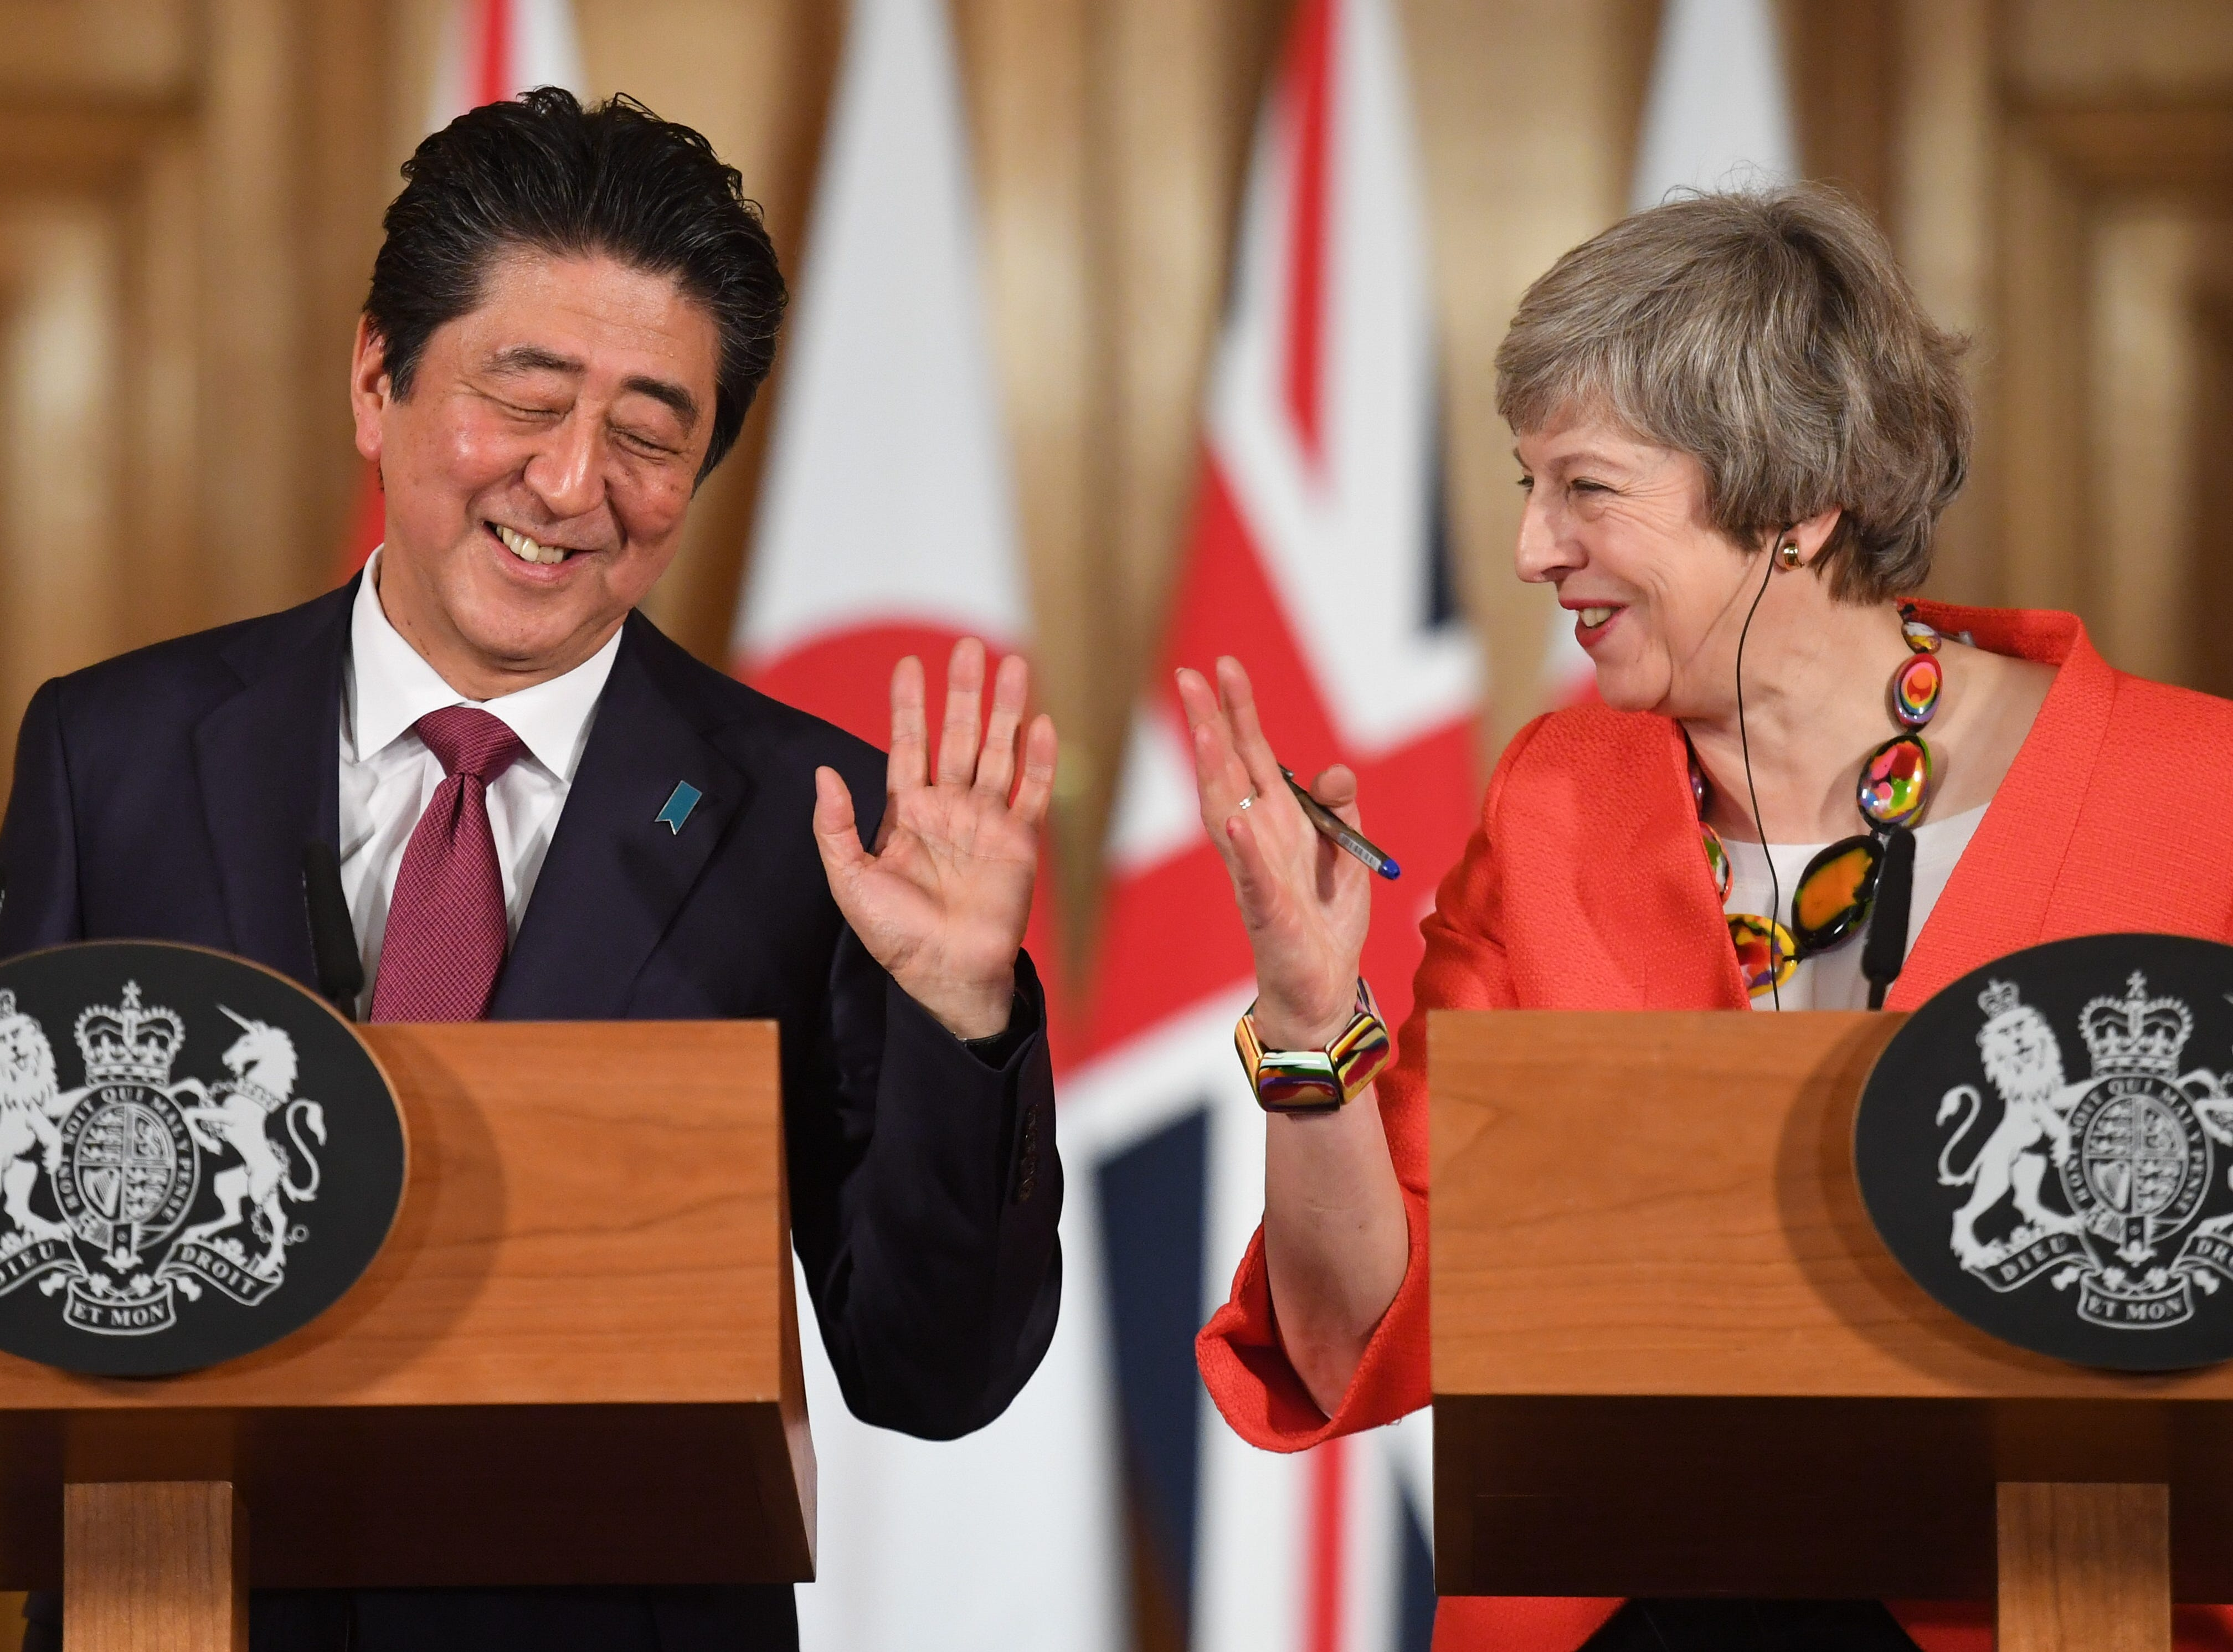 British Prime Minister Theresa May holds a press conference with Japanese Prime Minister Shinzo Abe after bilateral talks at 10 Downing Street on Jan. 10, 2019 in London, England. The leader of Japan is visiting to strengthen ties with the United Kingdom before Brexit in March and to forge collaborations on technology and innovation between counties.